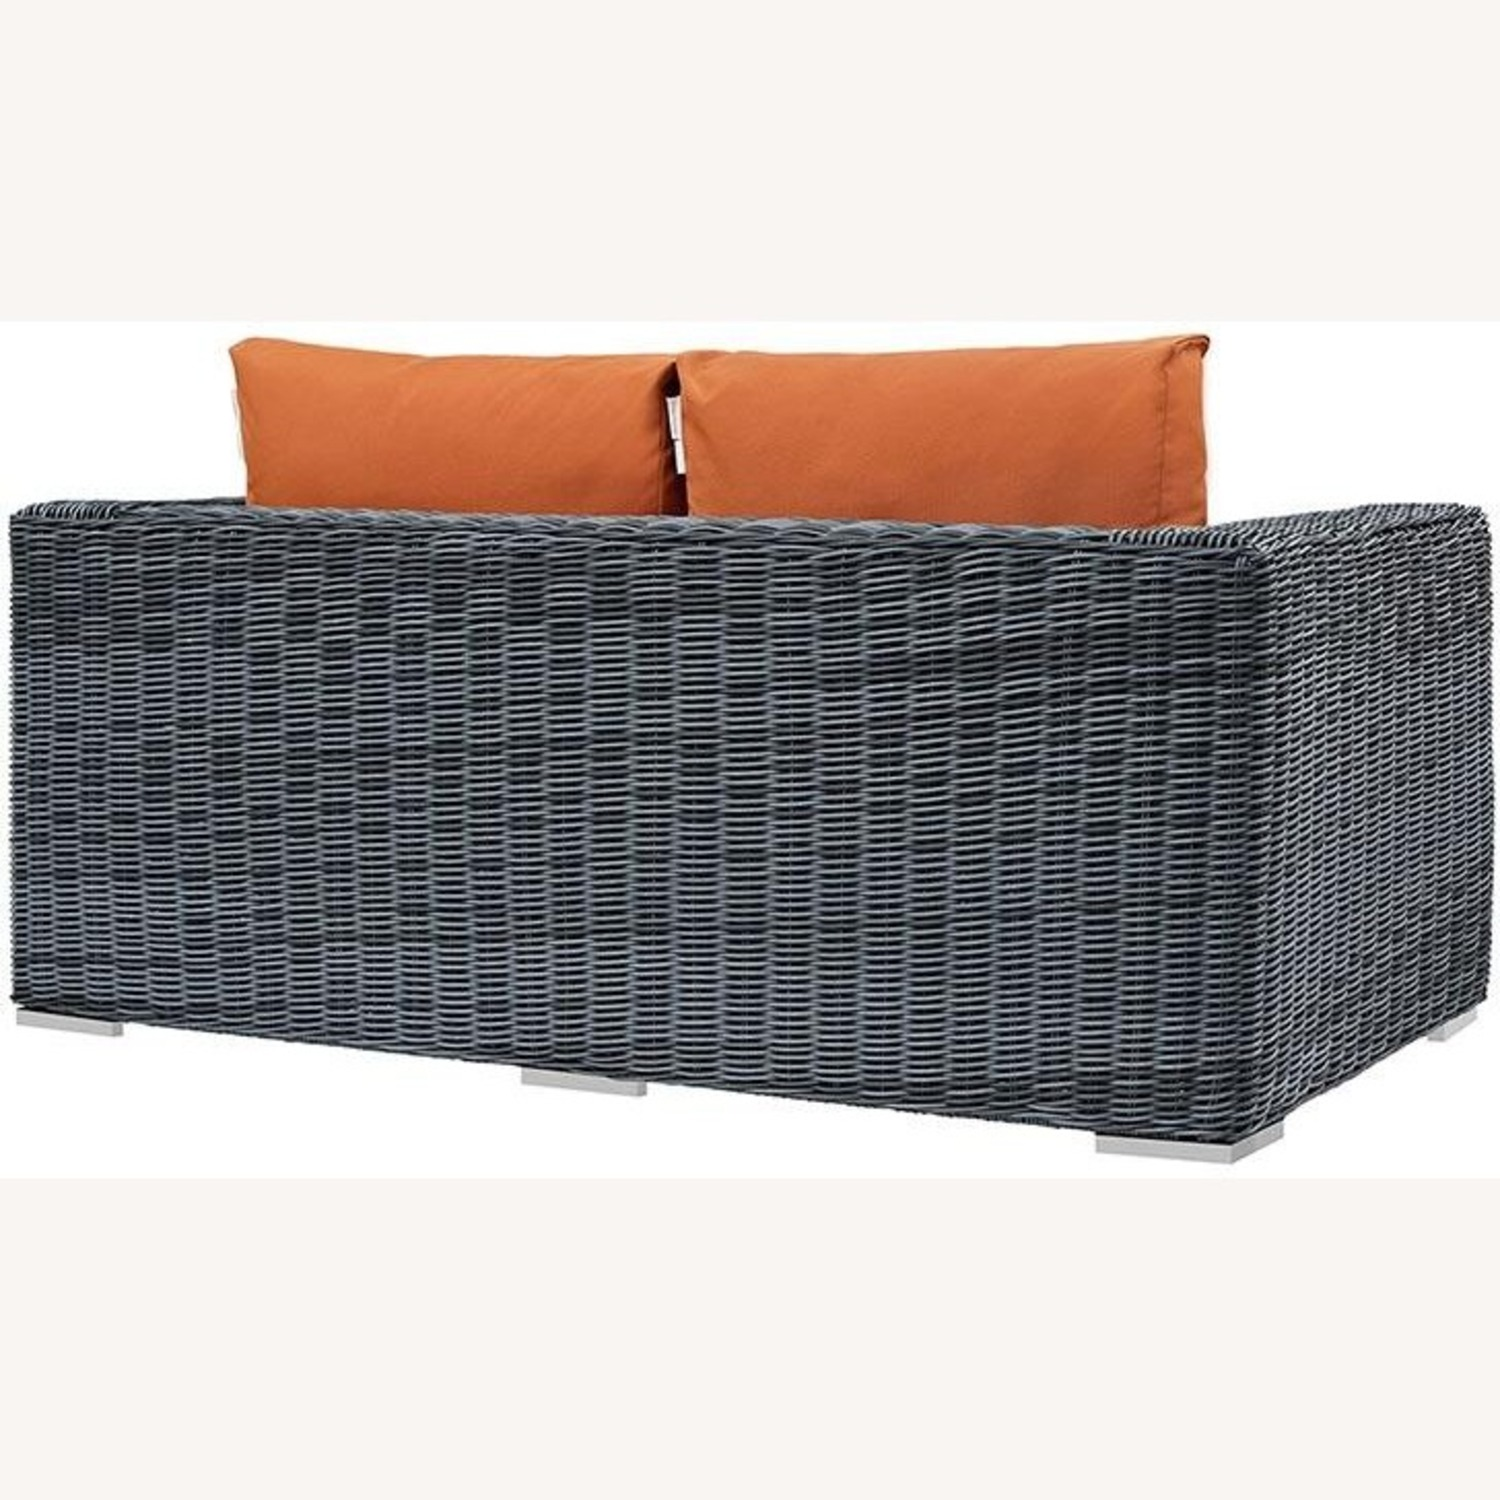 Outdoor Loveseat W/ Tuscan Cushion Fabric - image-2